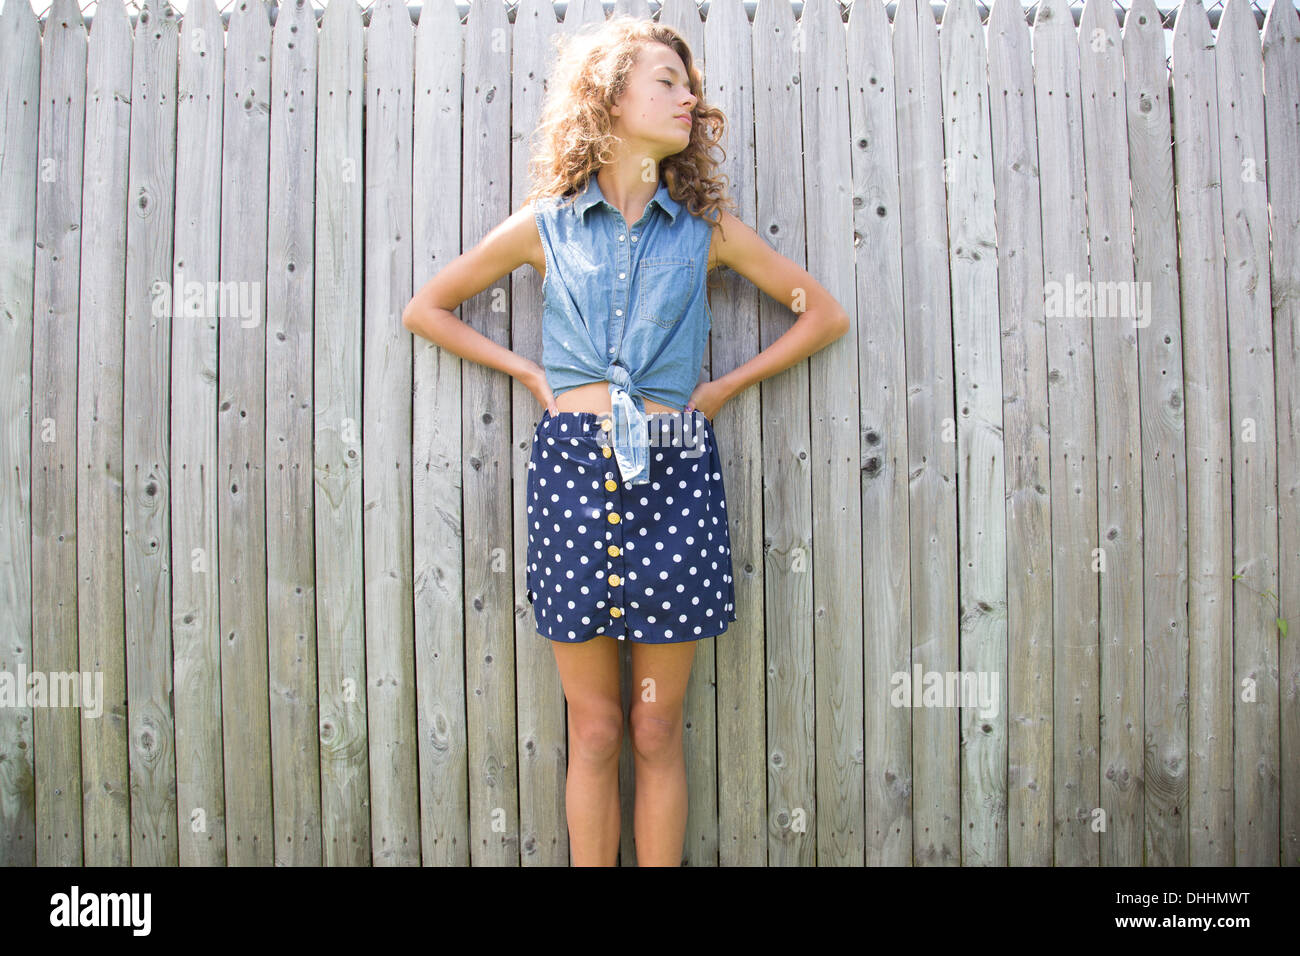 Portrait of teenage girl in front of wooden fence - Stock Image